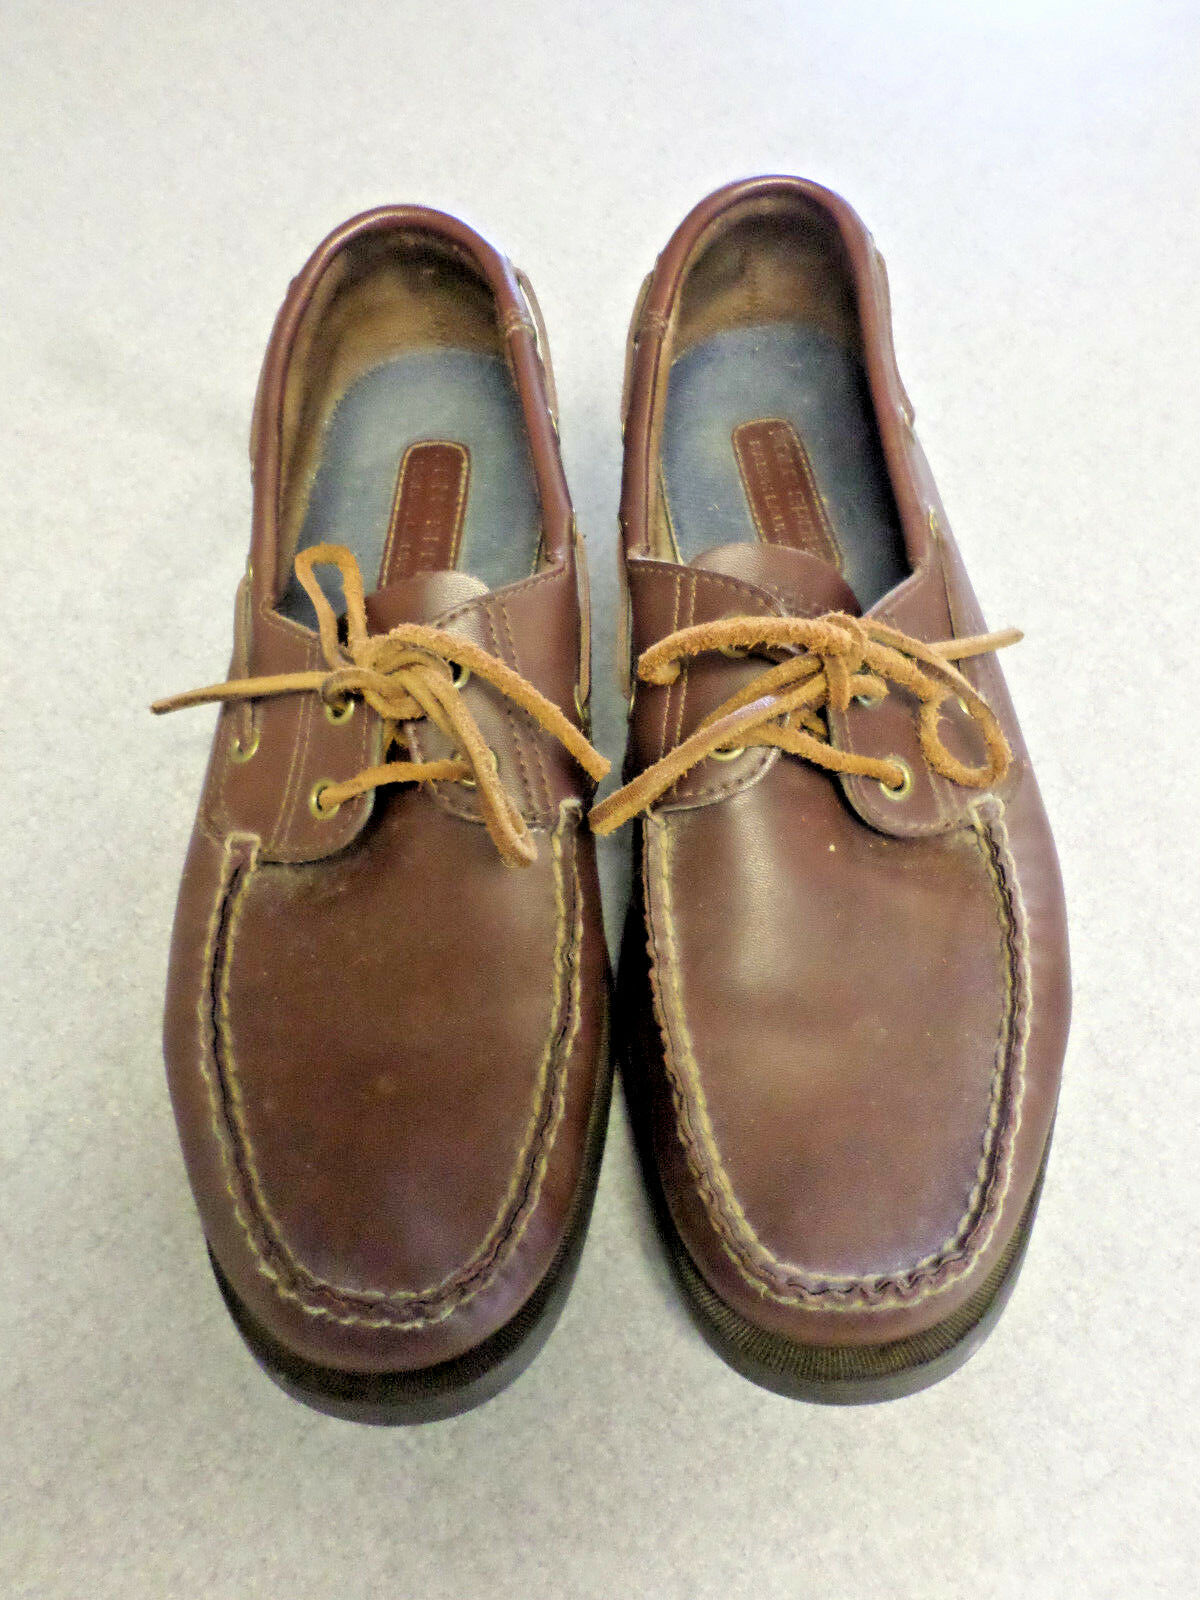 Polo Sport dark brown leather, boat shoes, Men's 11.5 D